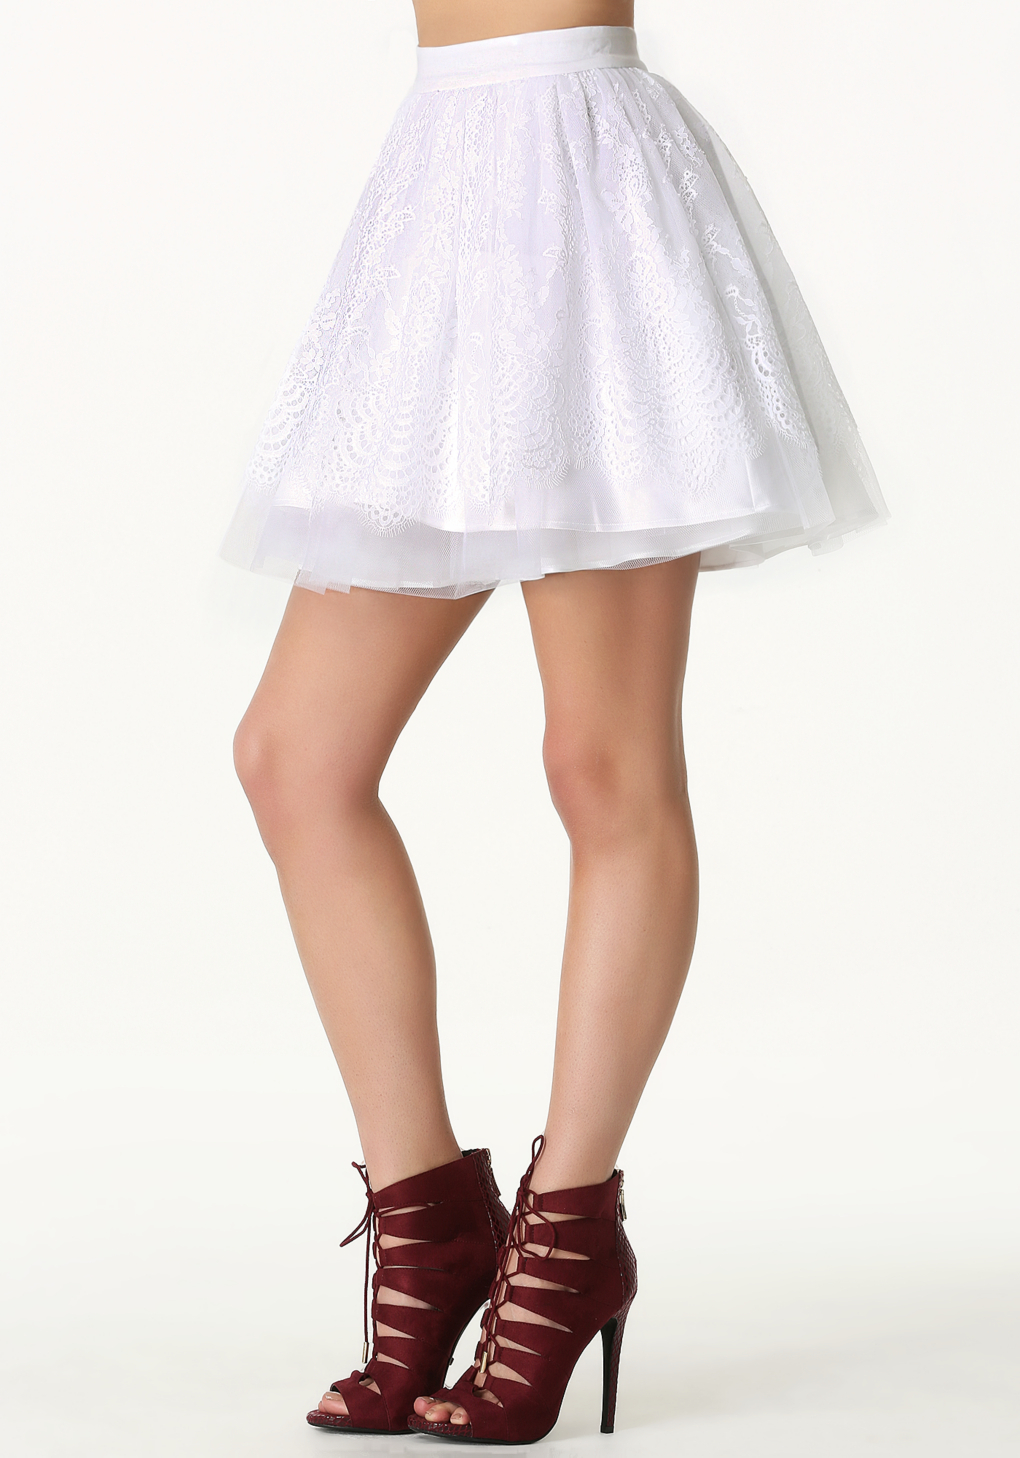 Bebe Scalloped Lace Circle Skirt in White